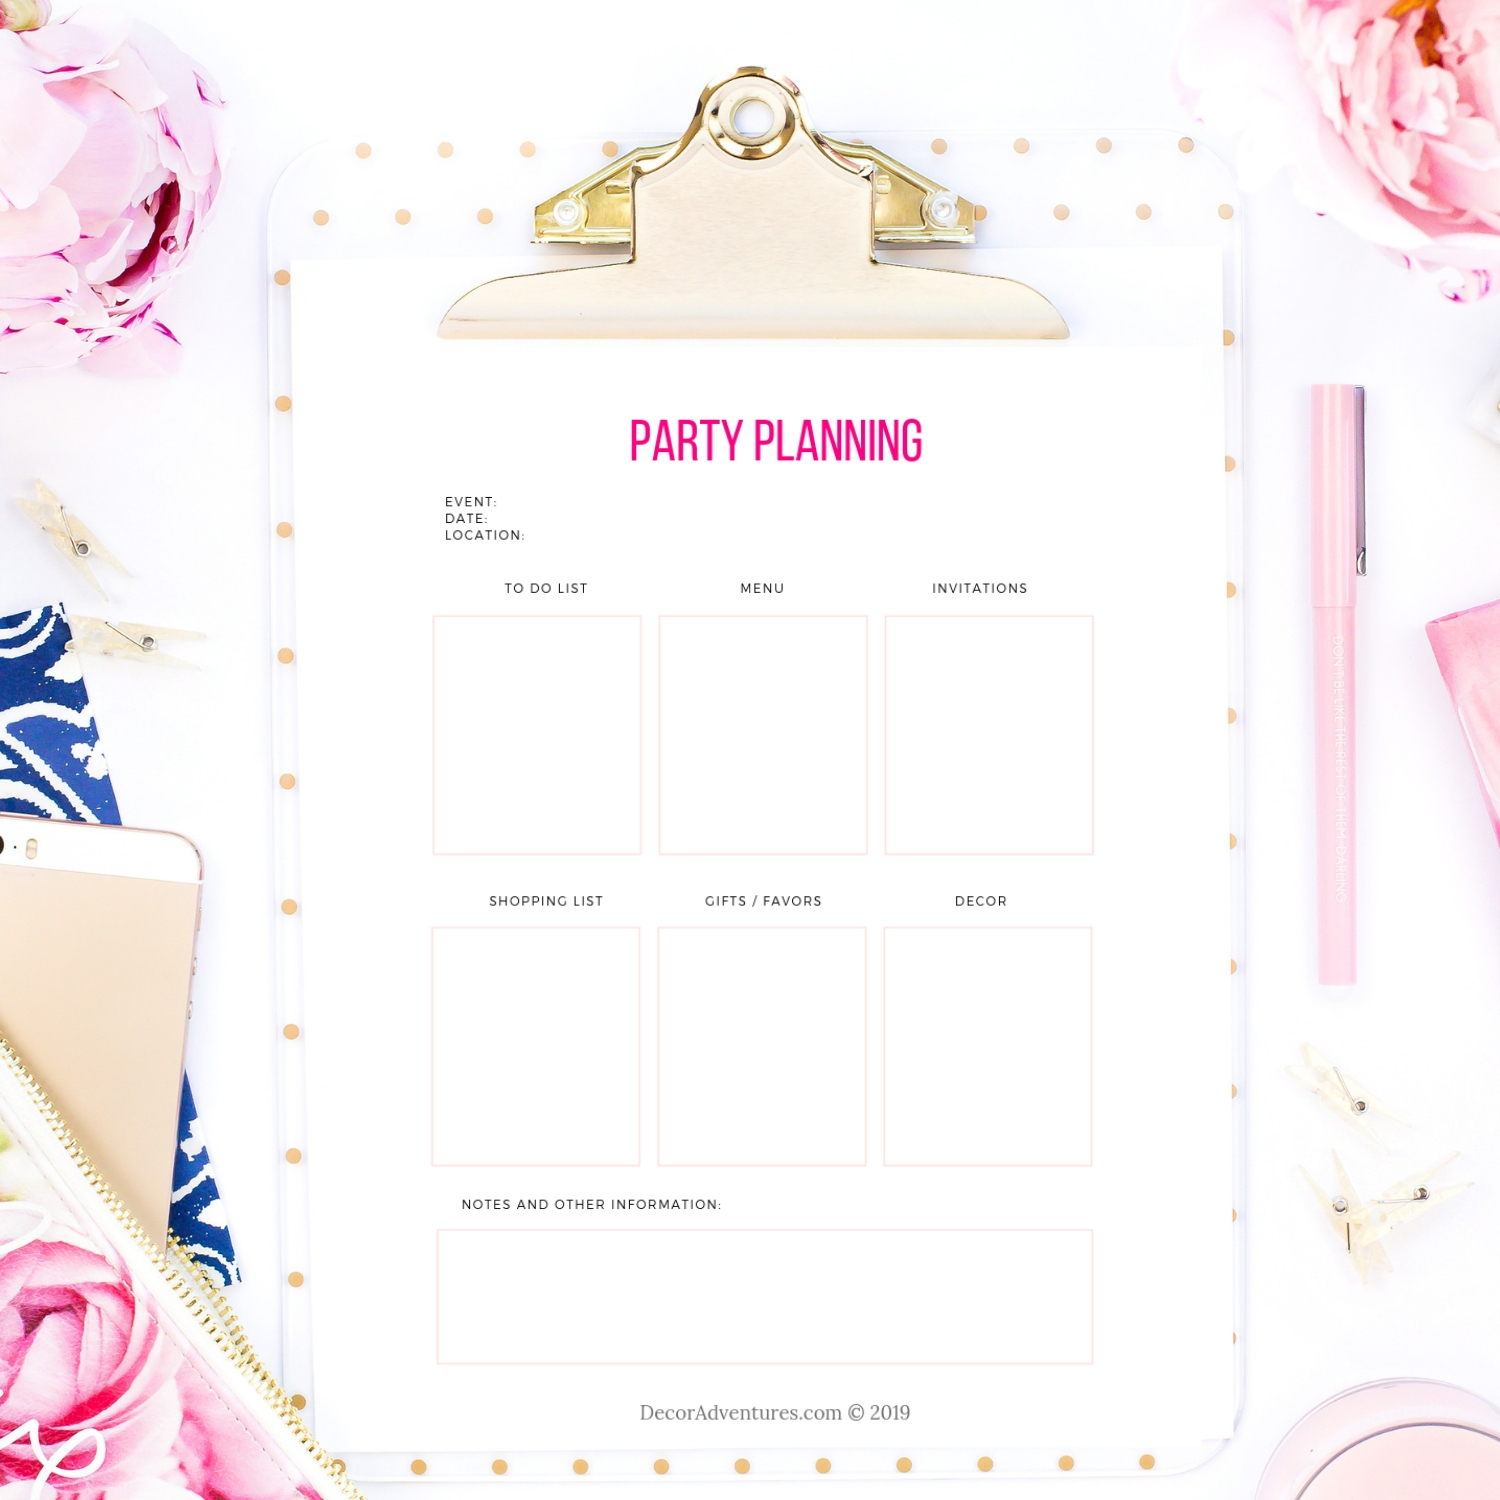 photograph relating to Printable Party Planning Checklist titled Get together Creating Listing Printable PDF